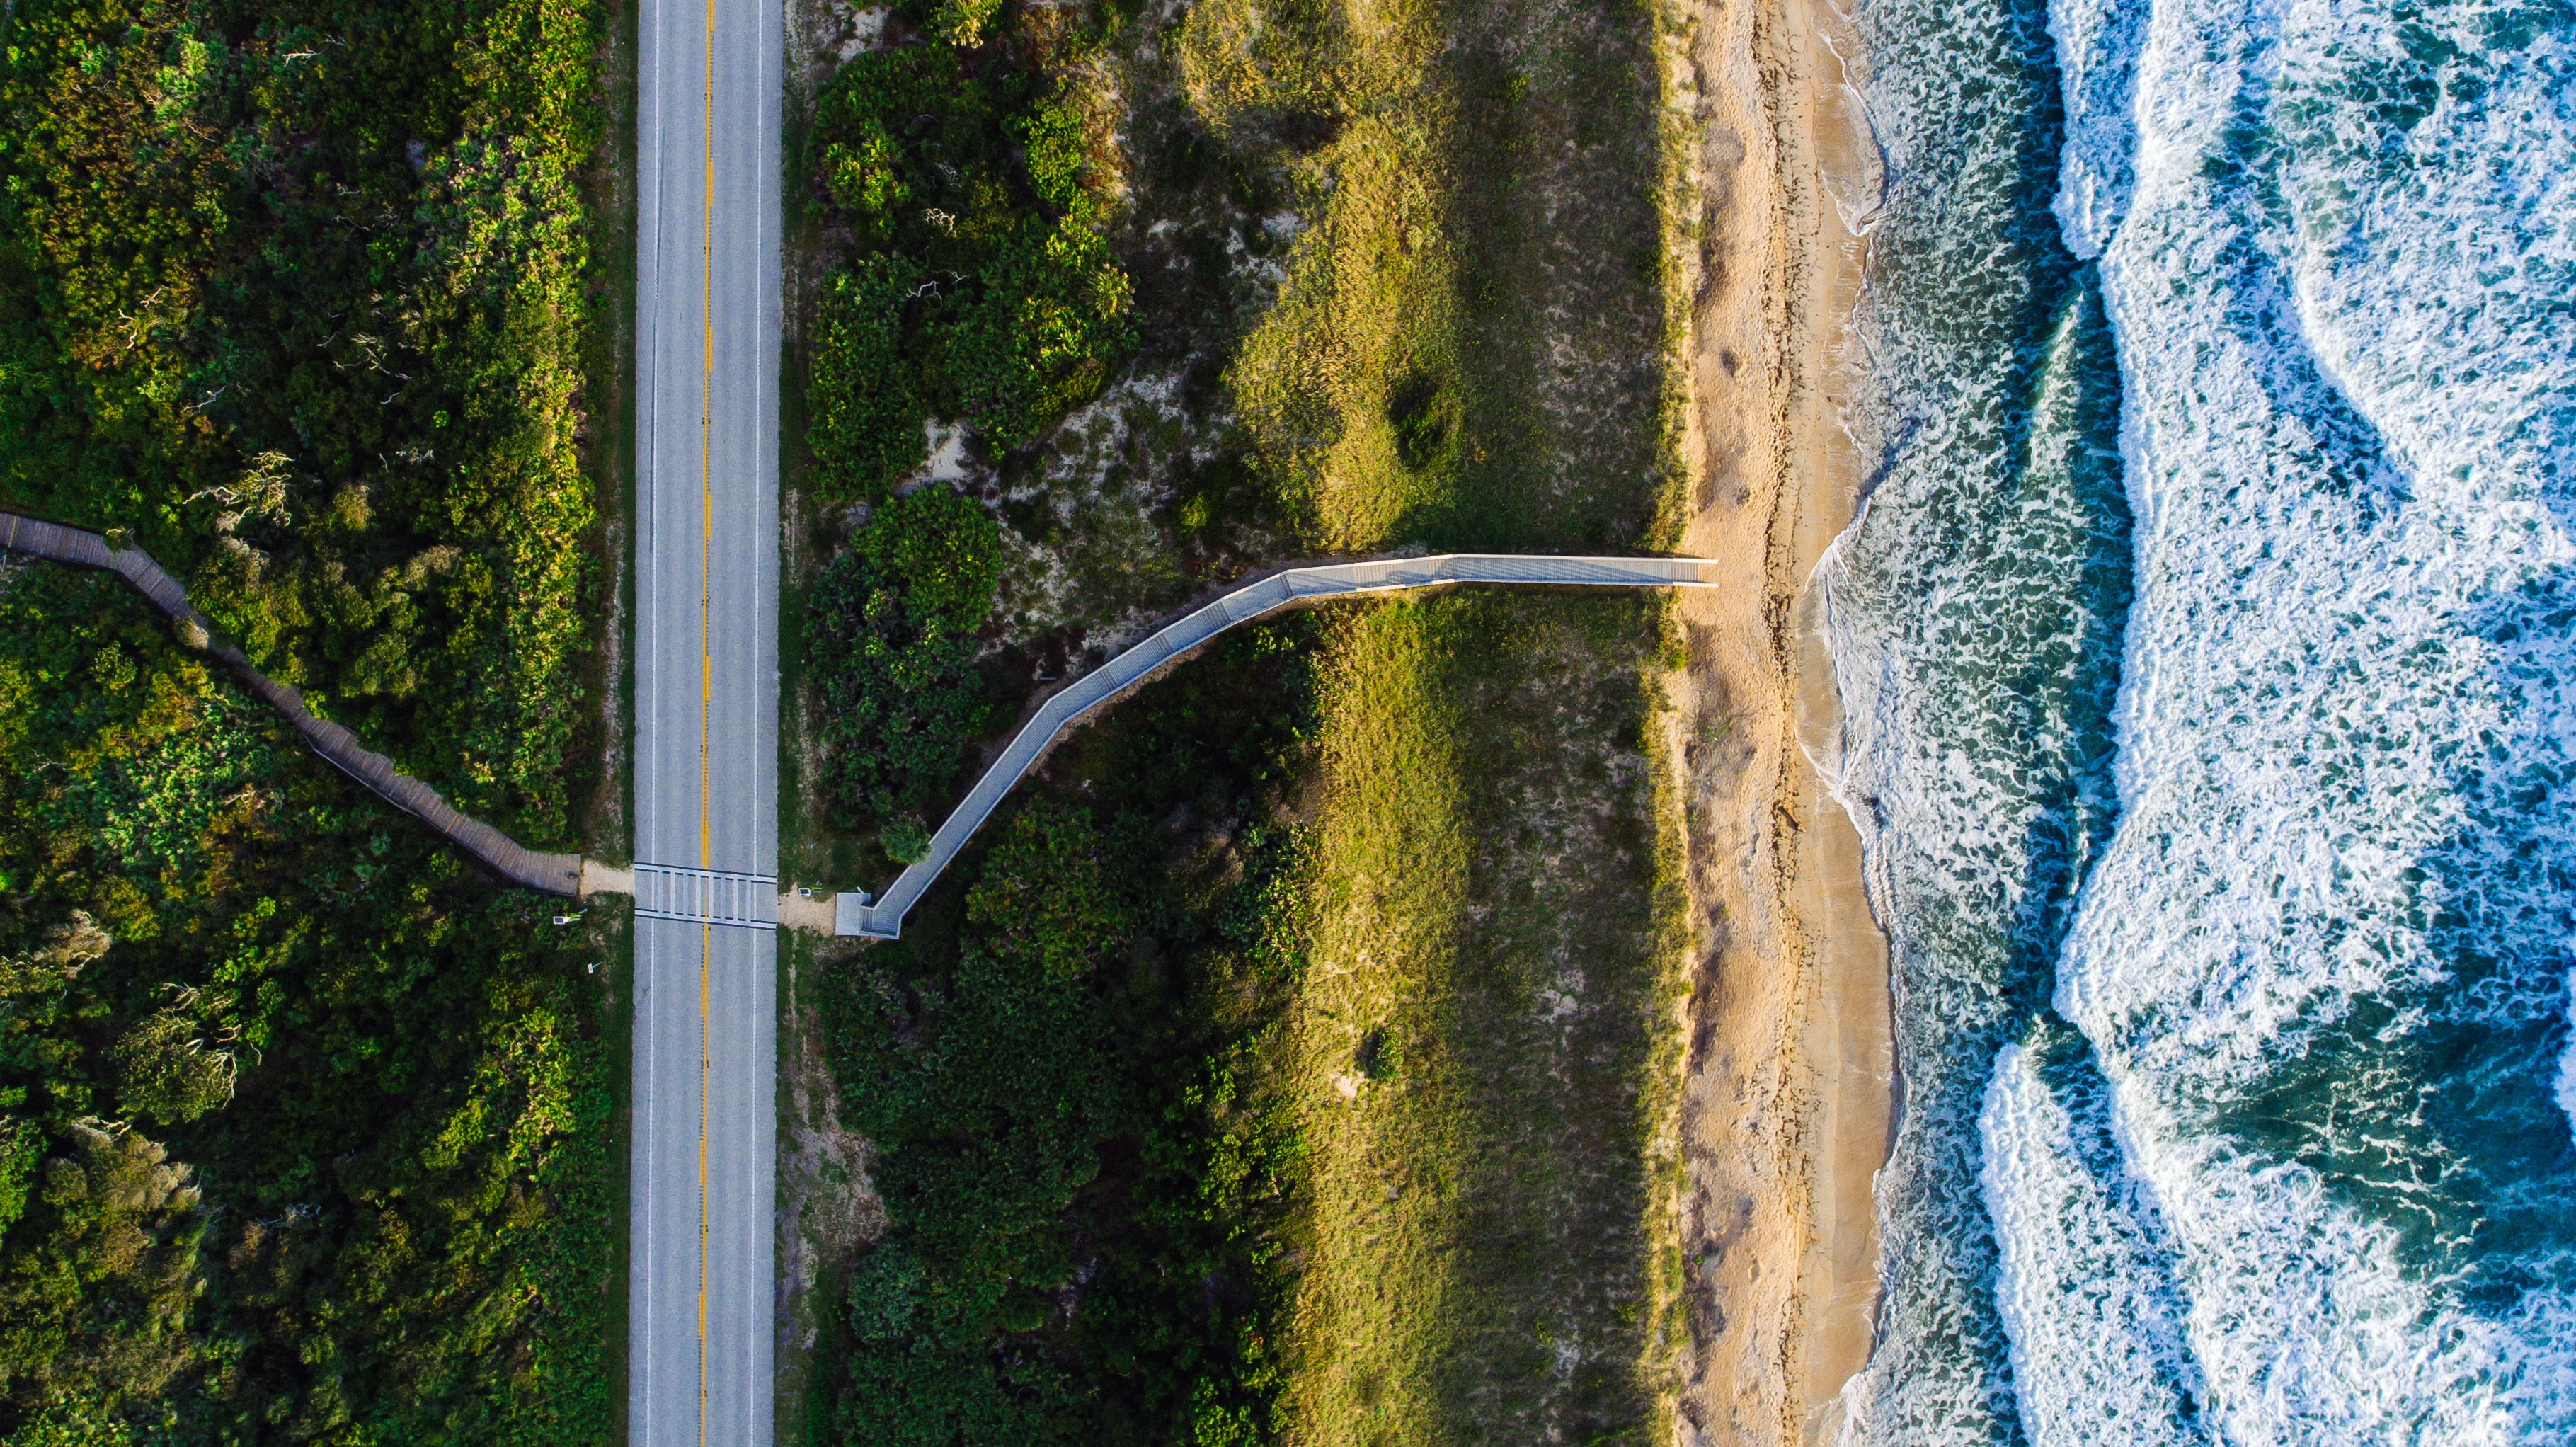 Drone aerial view of a road along the sand beach coastline at Ponte Vedra Beach, Florida, United States